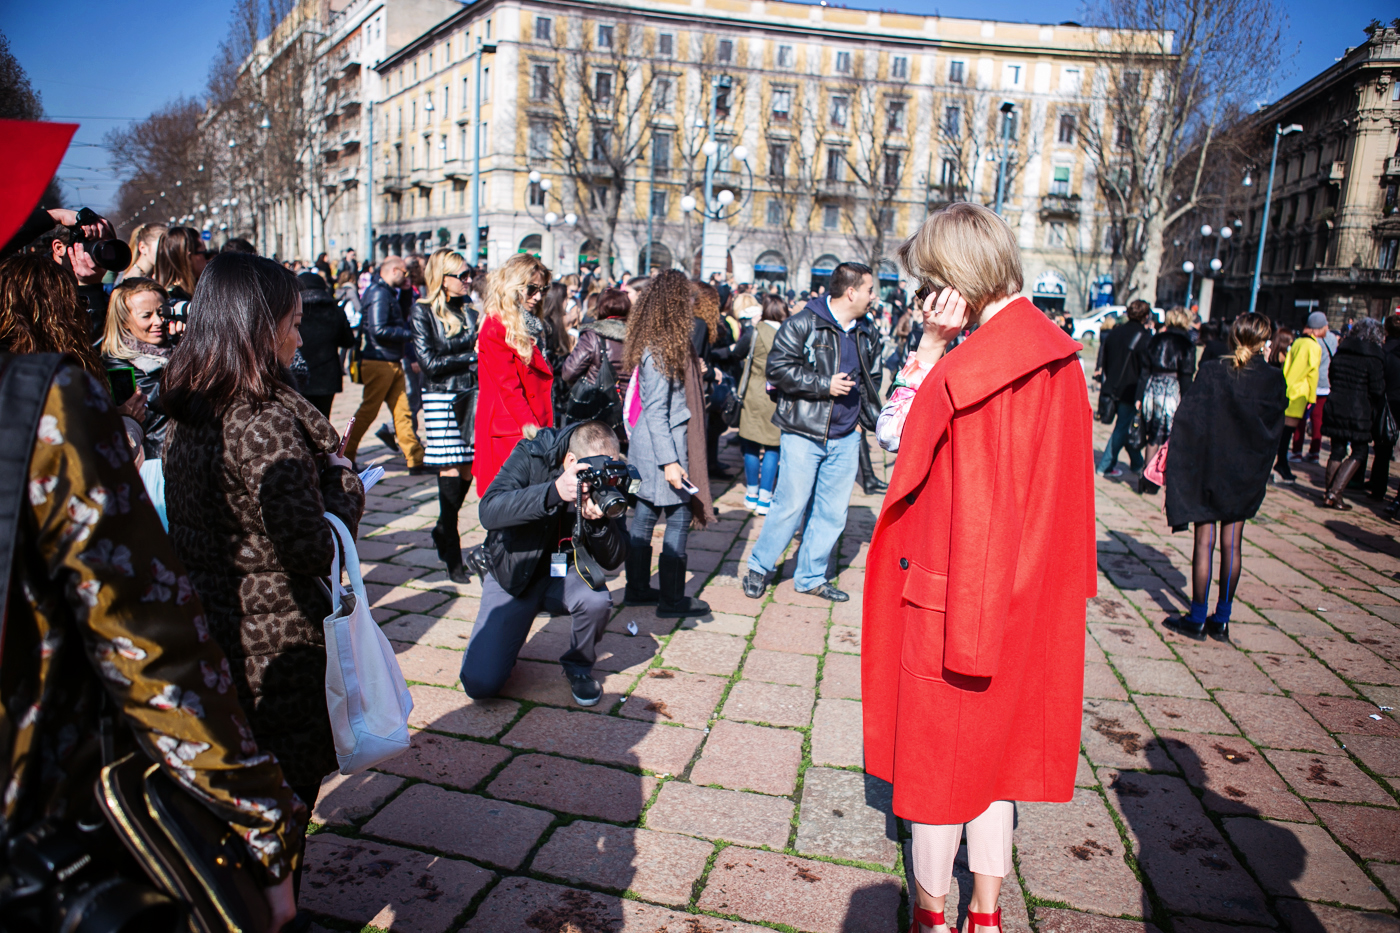 thecablook darya kamalova russian italian fashion blogger blonde short hair pixie cut street style whats inside you by eleonora carisi outfit asos long red coat steven heels shopbop milan fashion week aw14 15 arco della pace just cavalli-18 copy